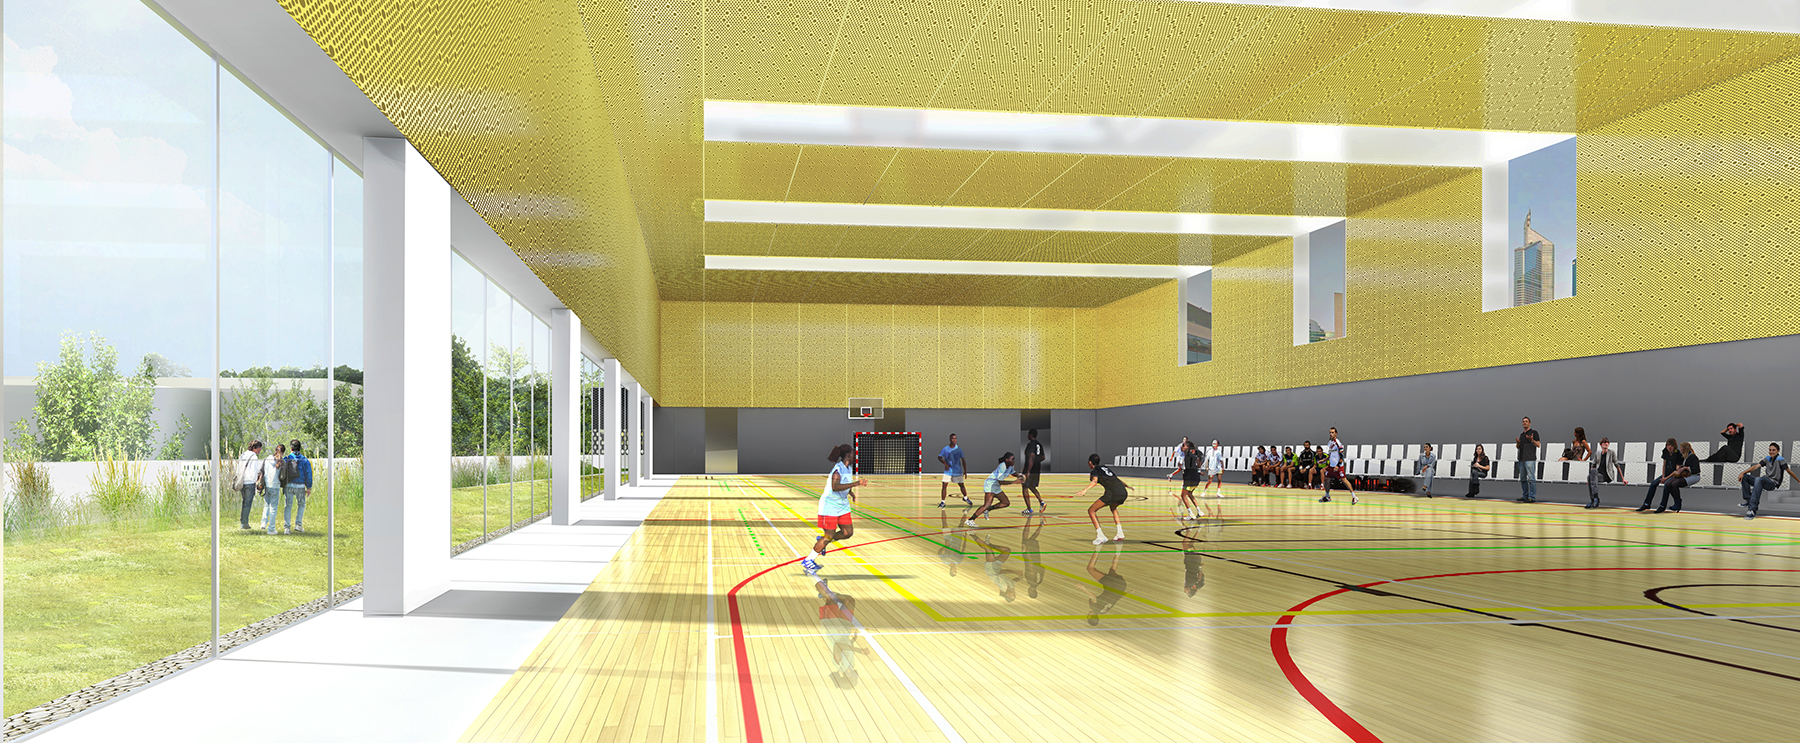 INTERSENS - LEHOUX PHILY & SAMAHA Architectes - Gymnase - Courbevoie - Image d'Architecture 3D (3)